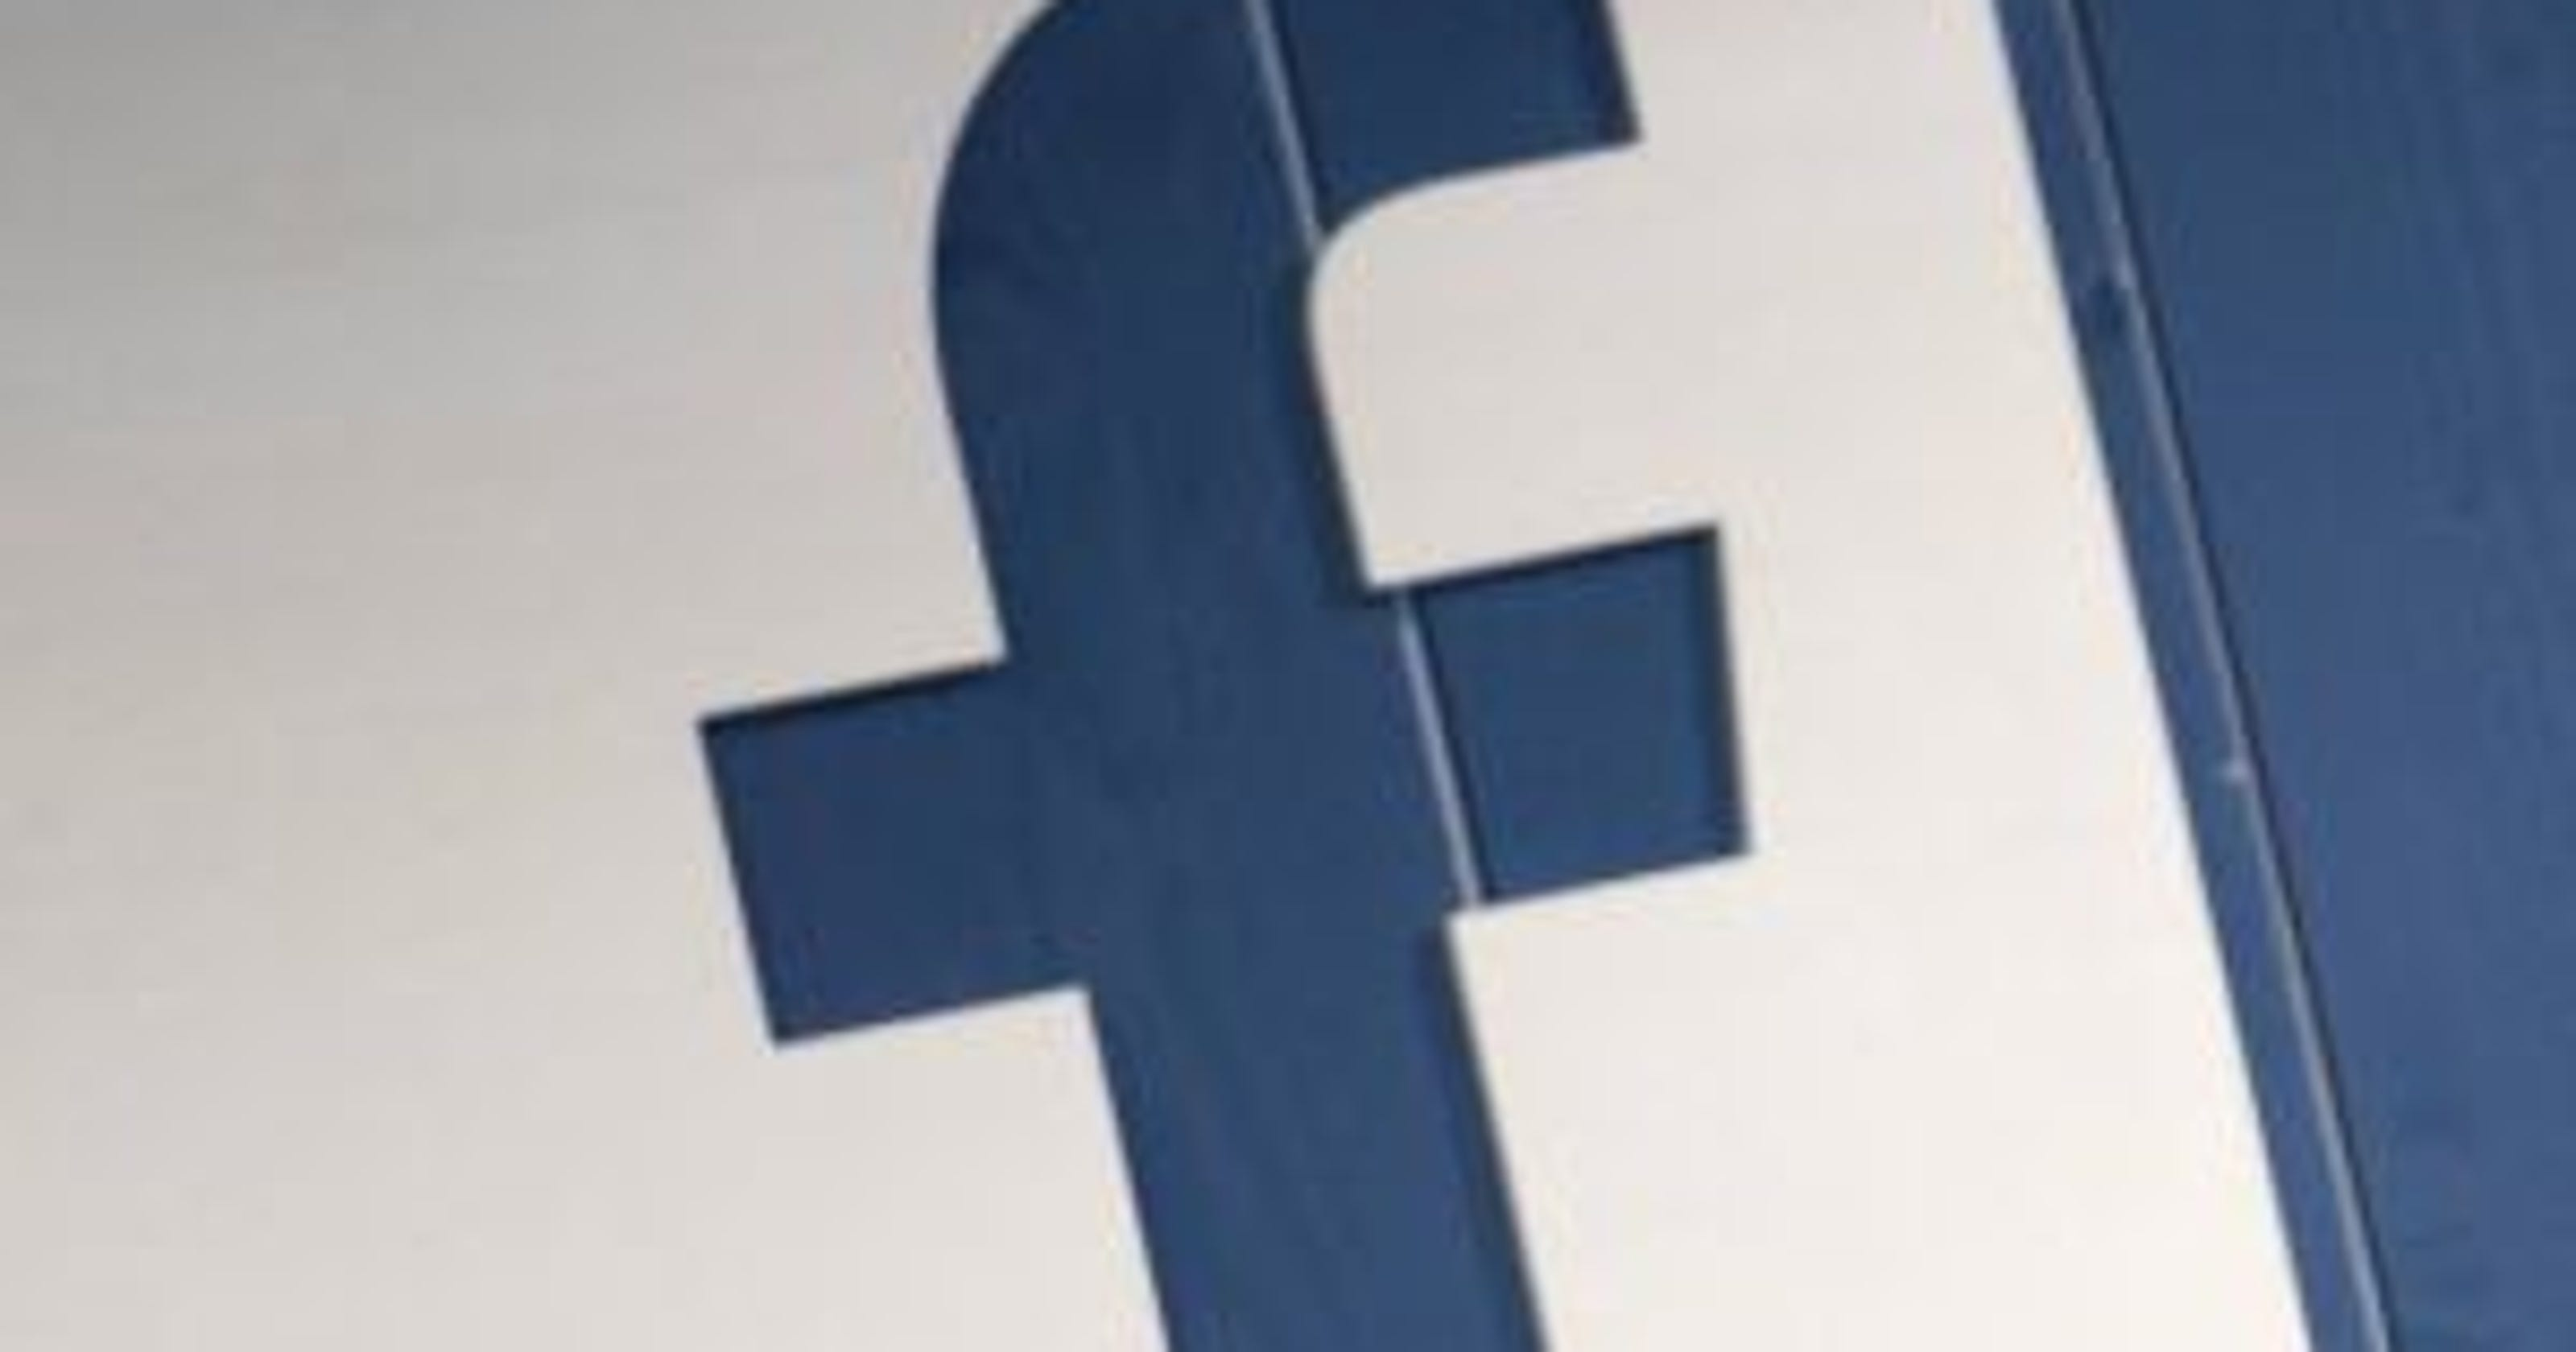 Facebook Hack Was The Work Of Spammers Not Nation State Report Says